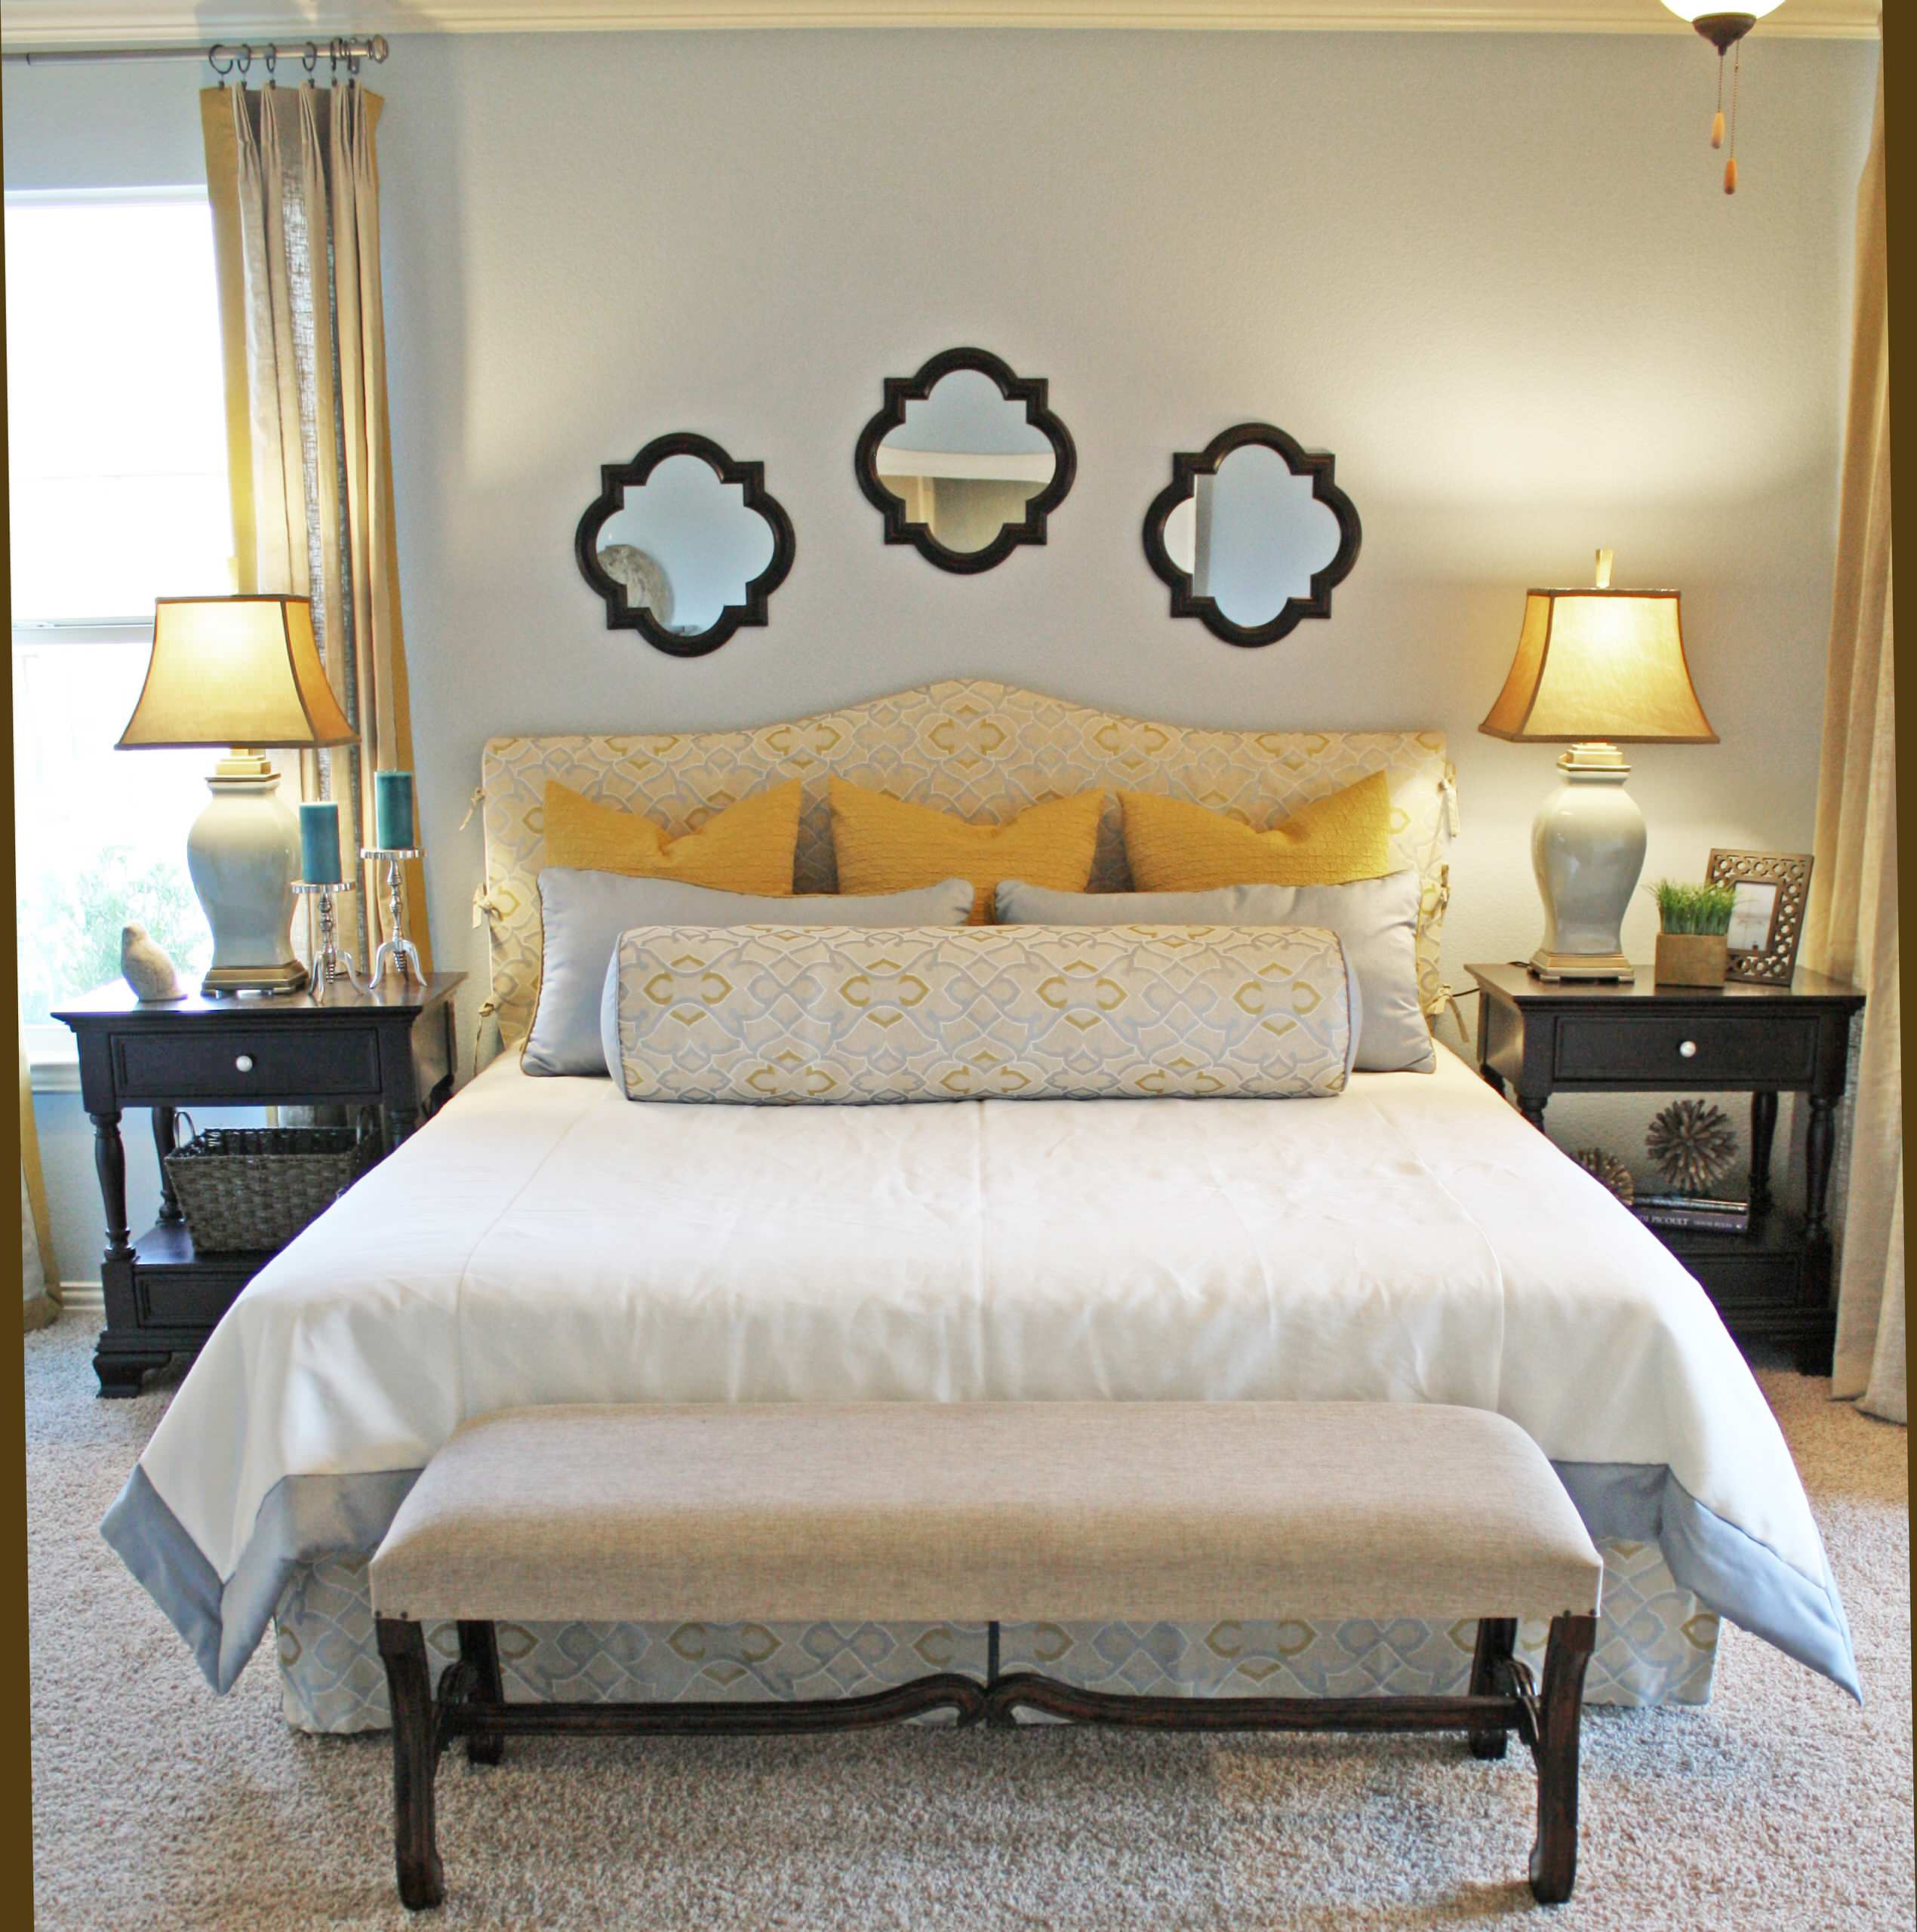 Fabric Headboard And Matching Bedskirt Ideas Photos Houzz